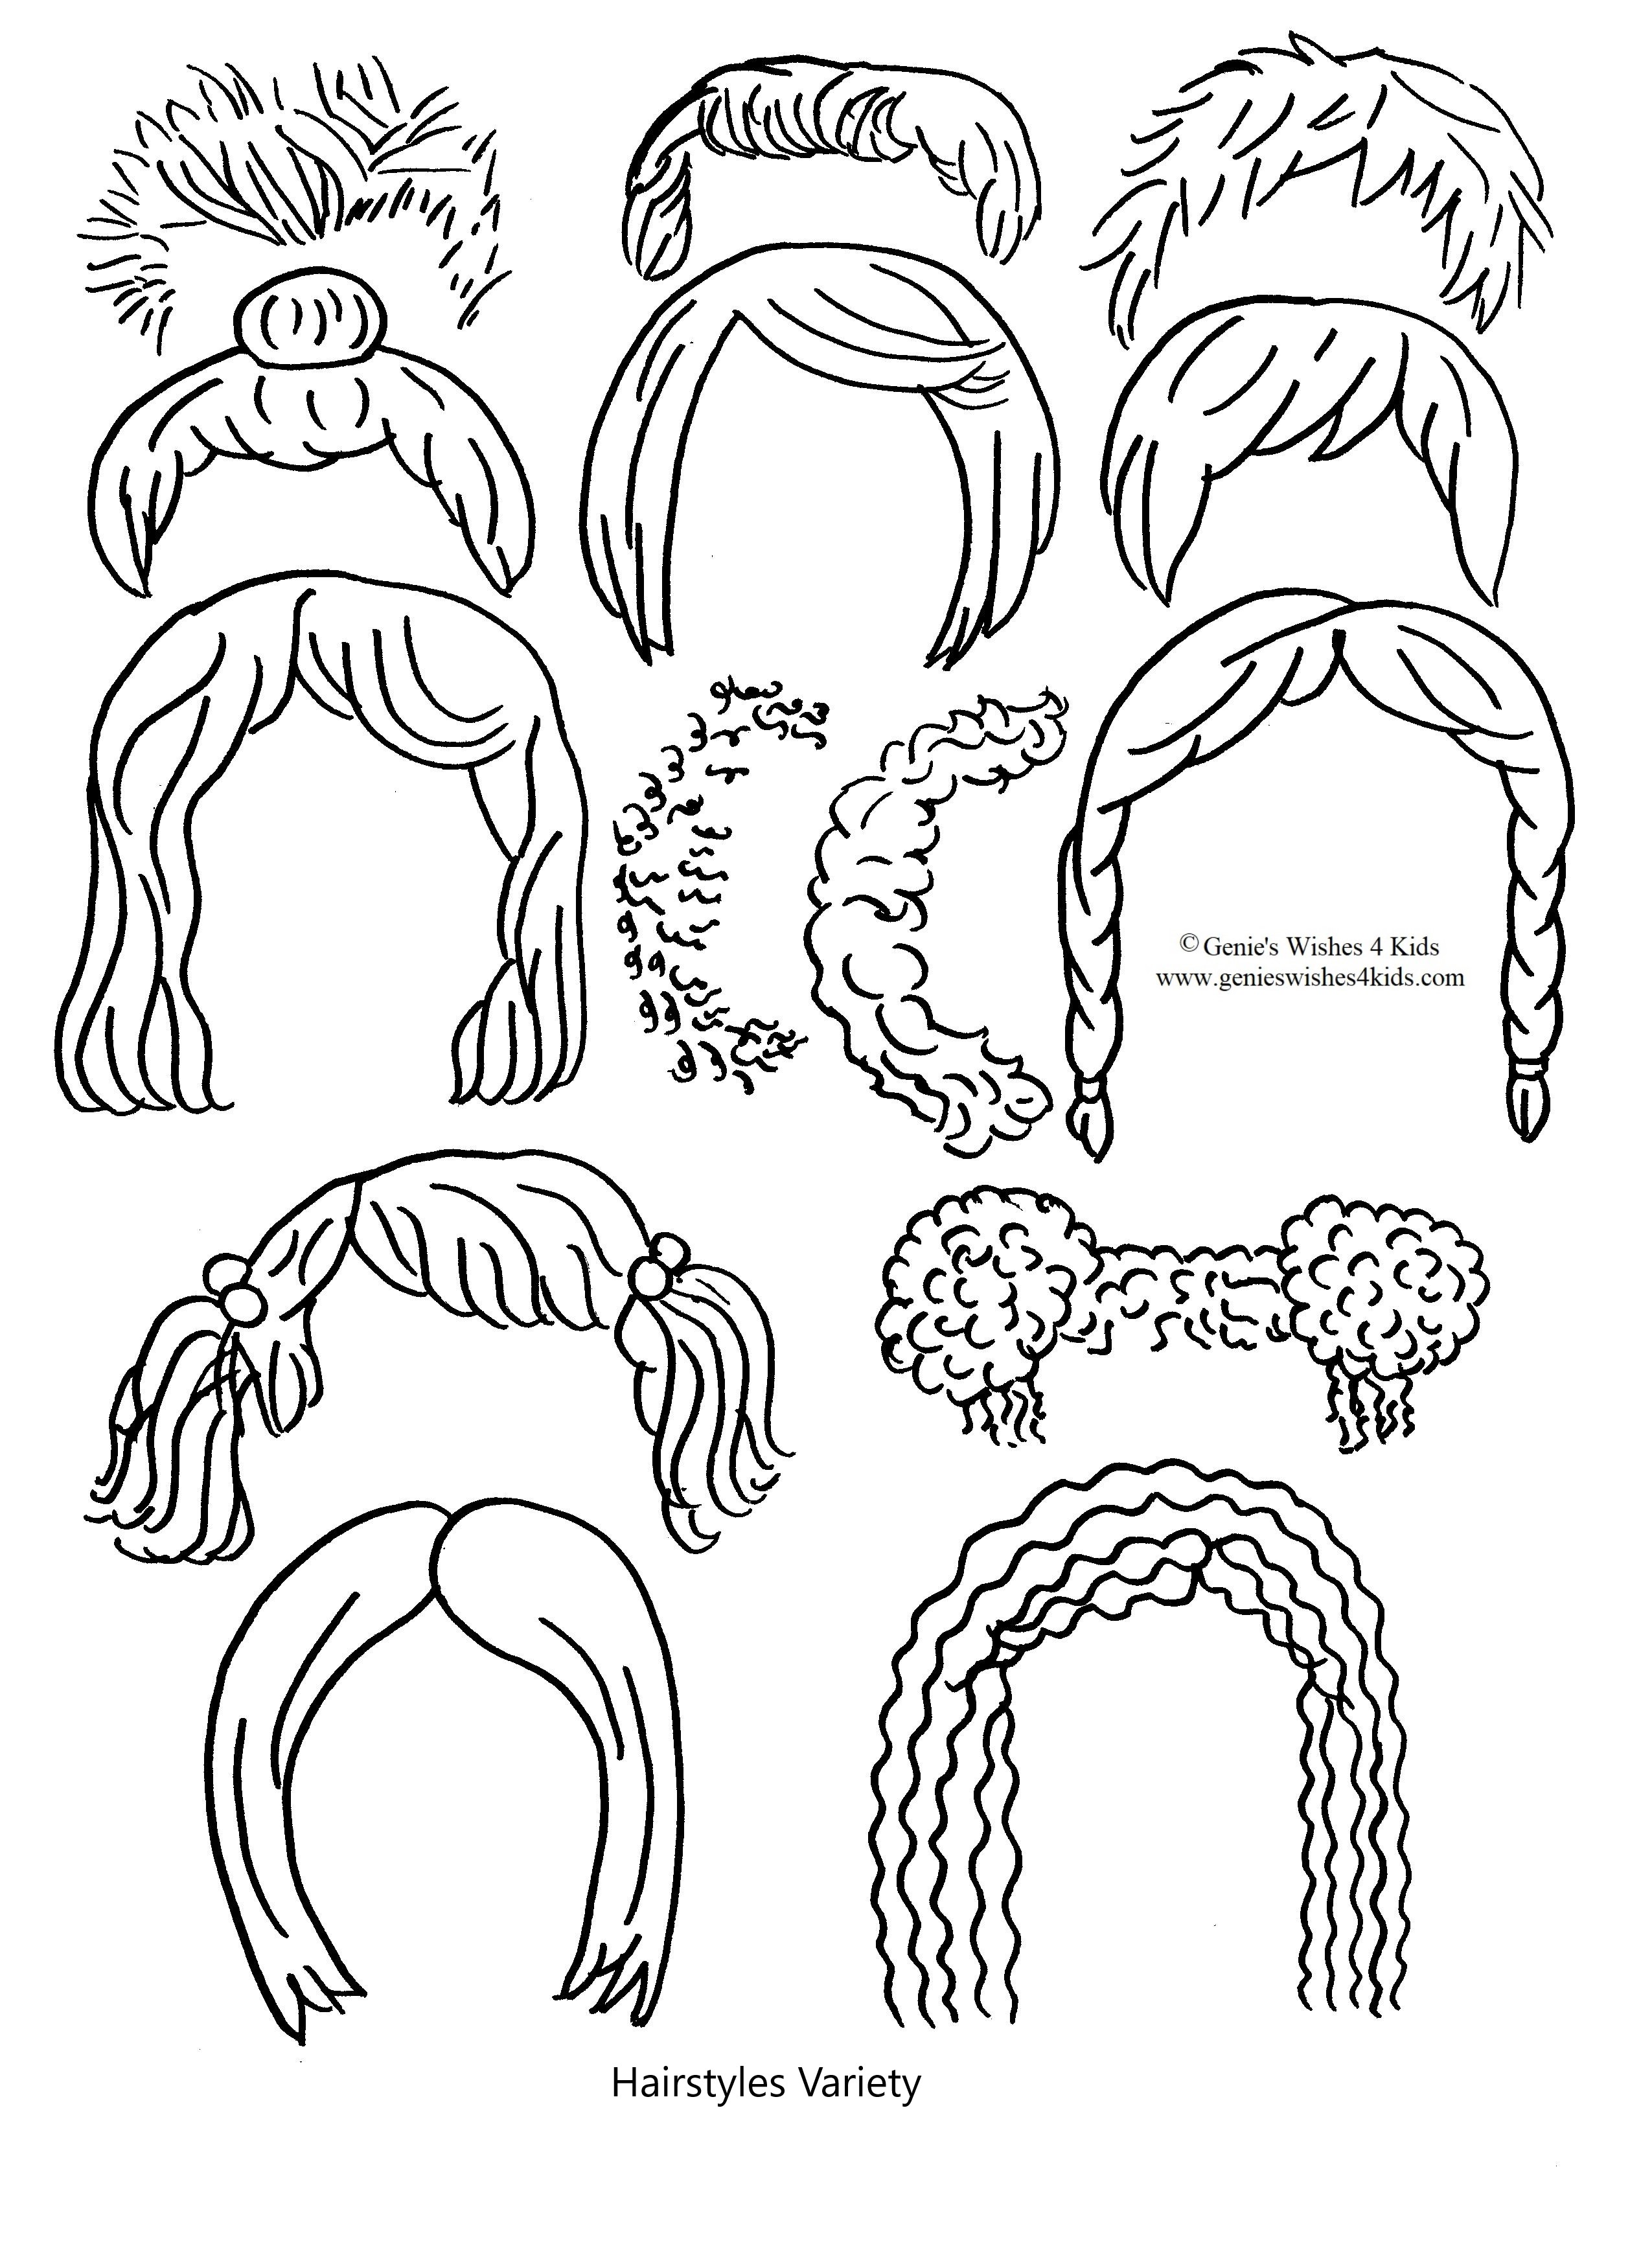 Hairstyles variety